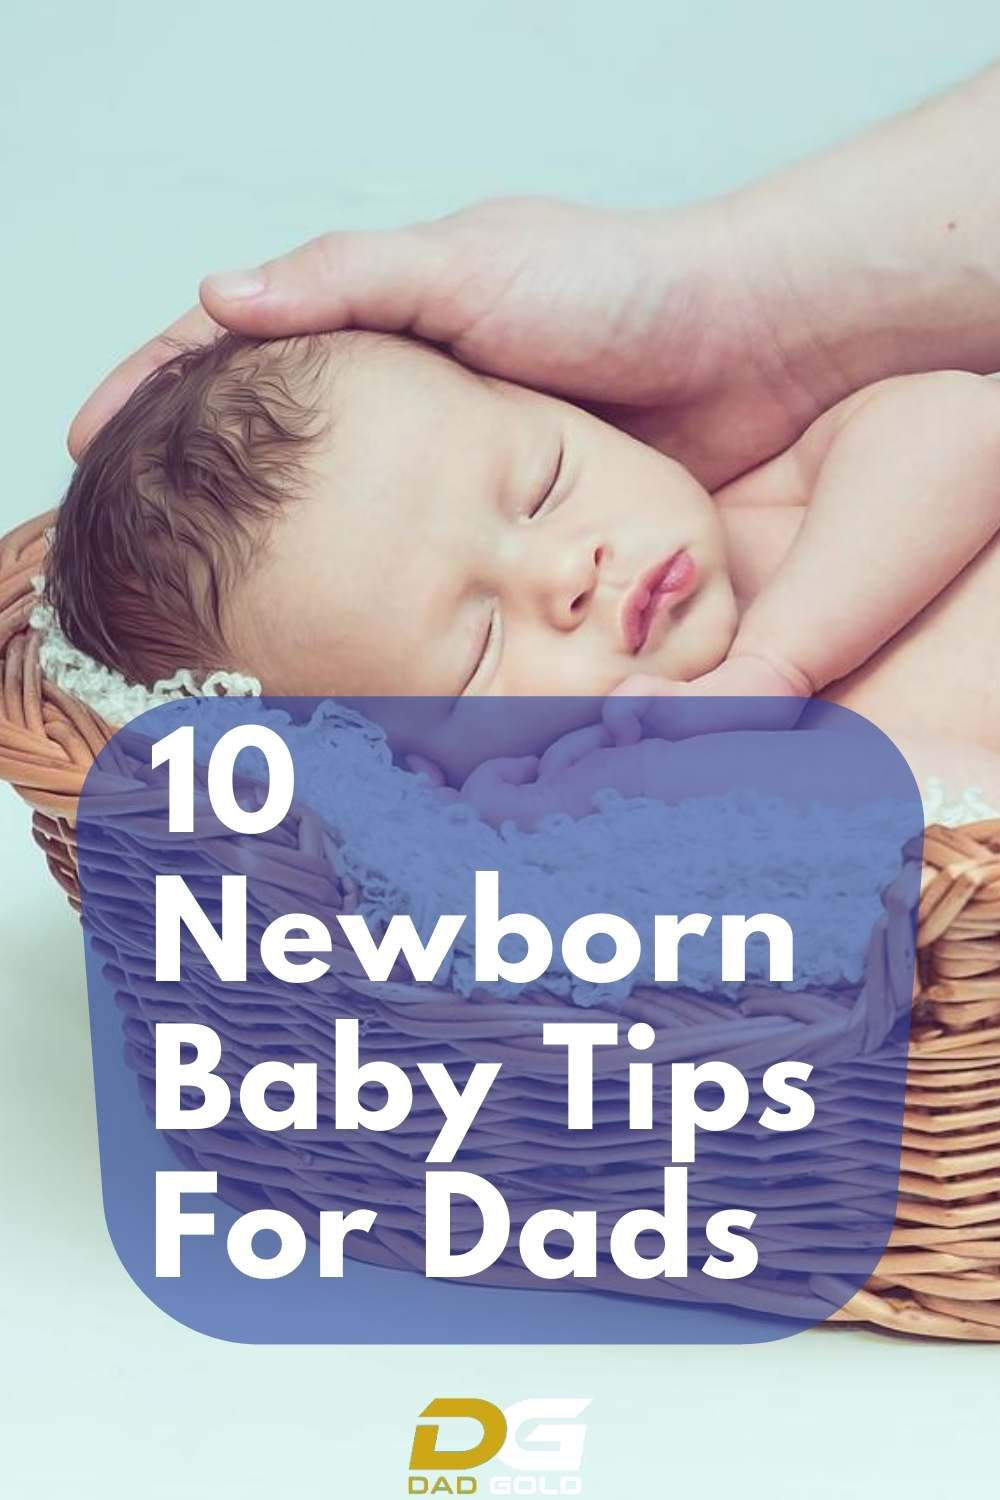 10 Newborn Baby Tips For Dads